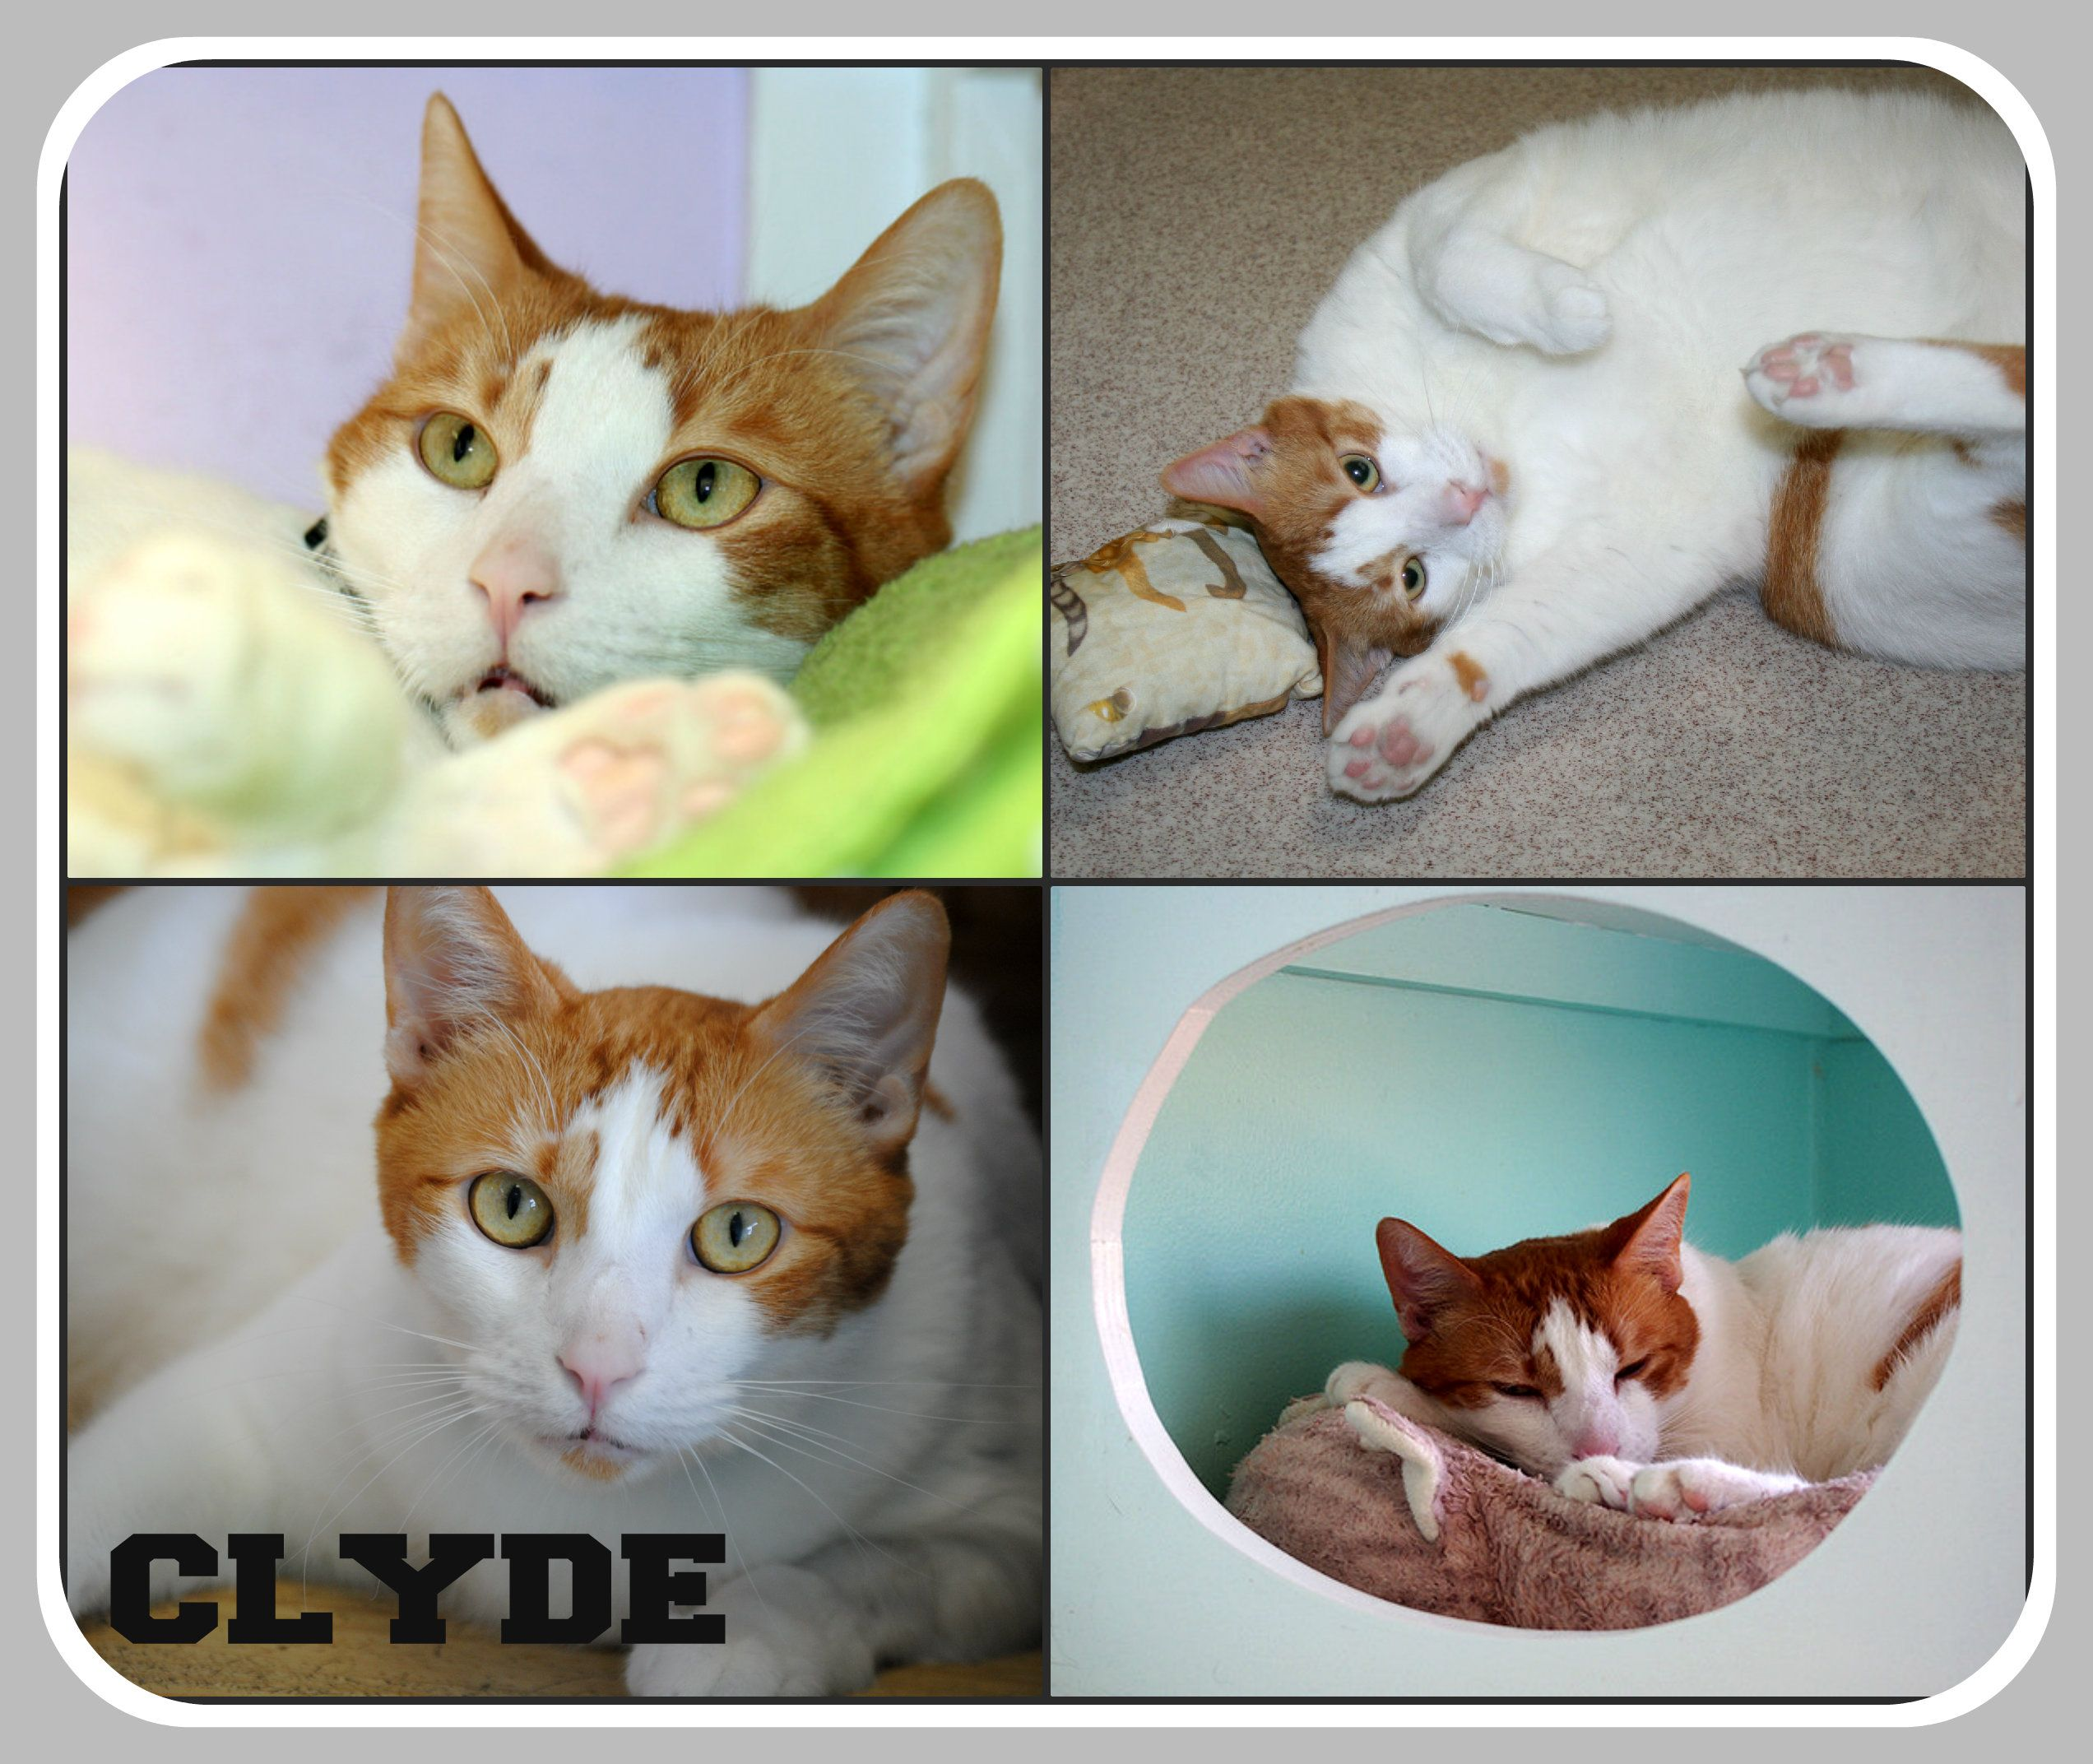 Adoptable cat, Mr. Clyde at Good Mews